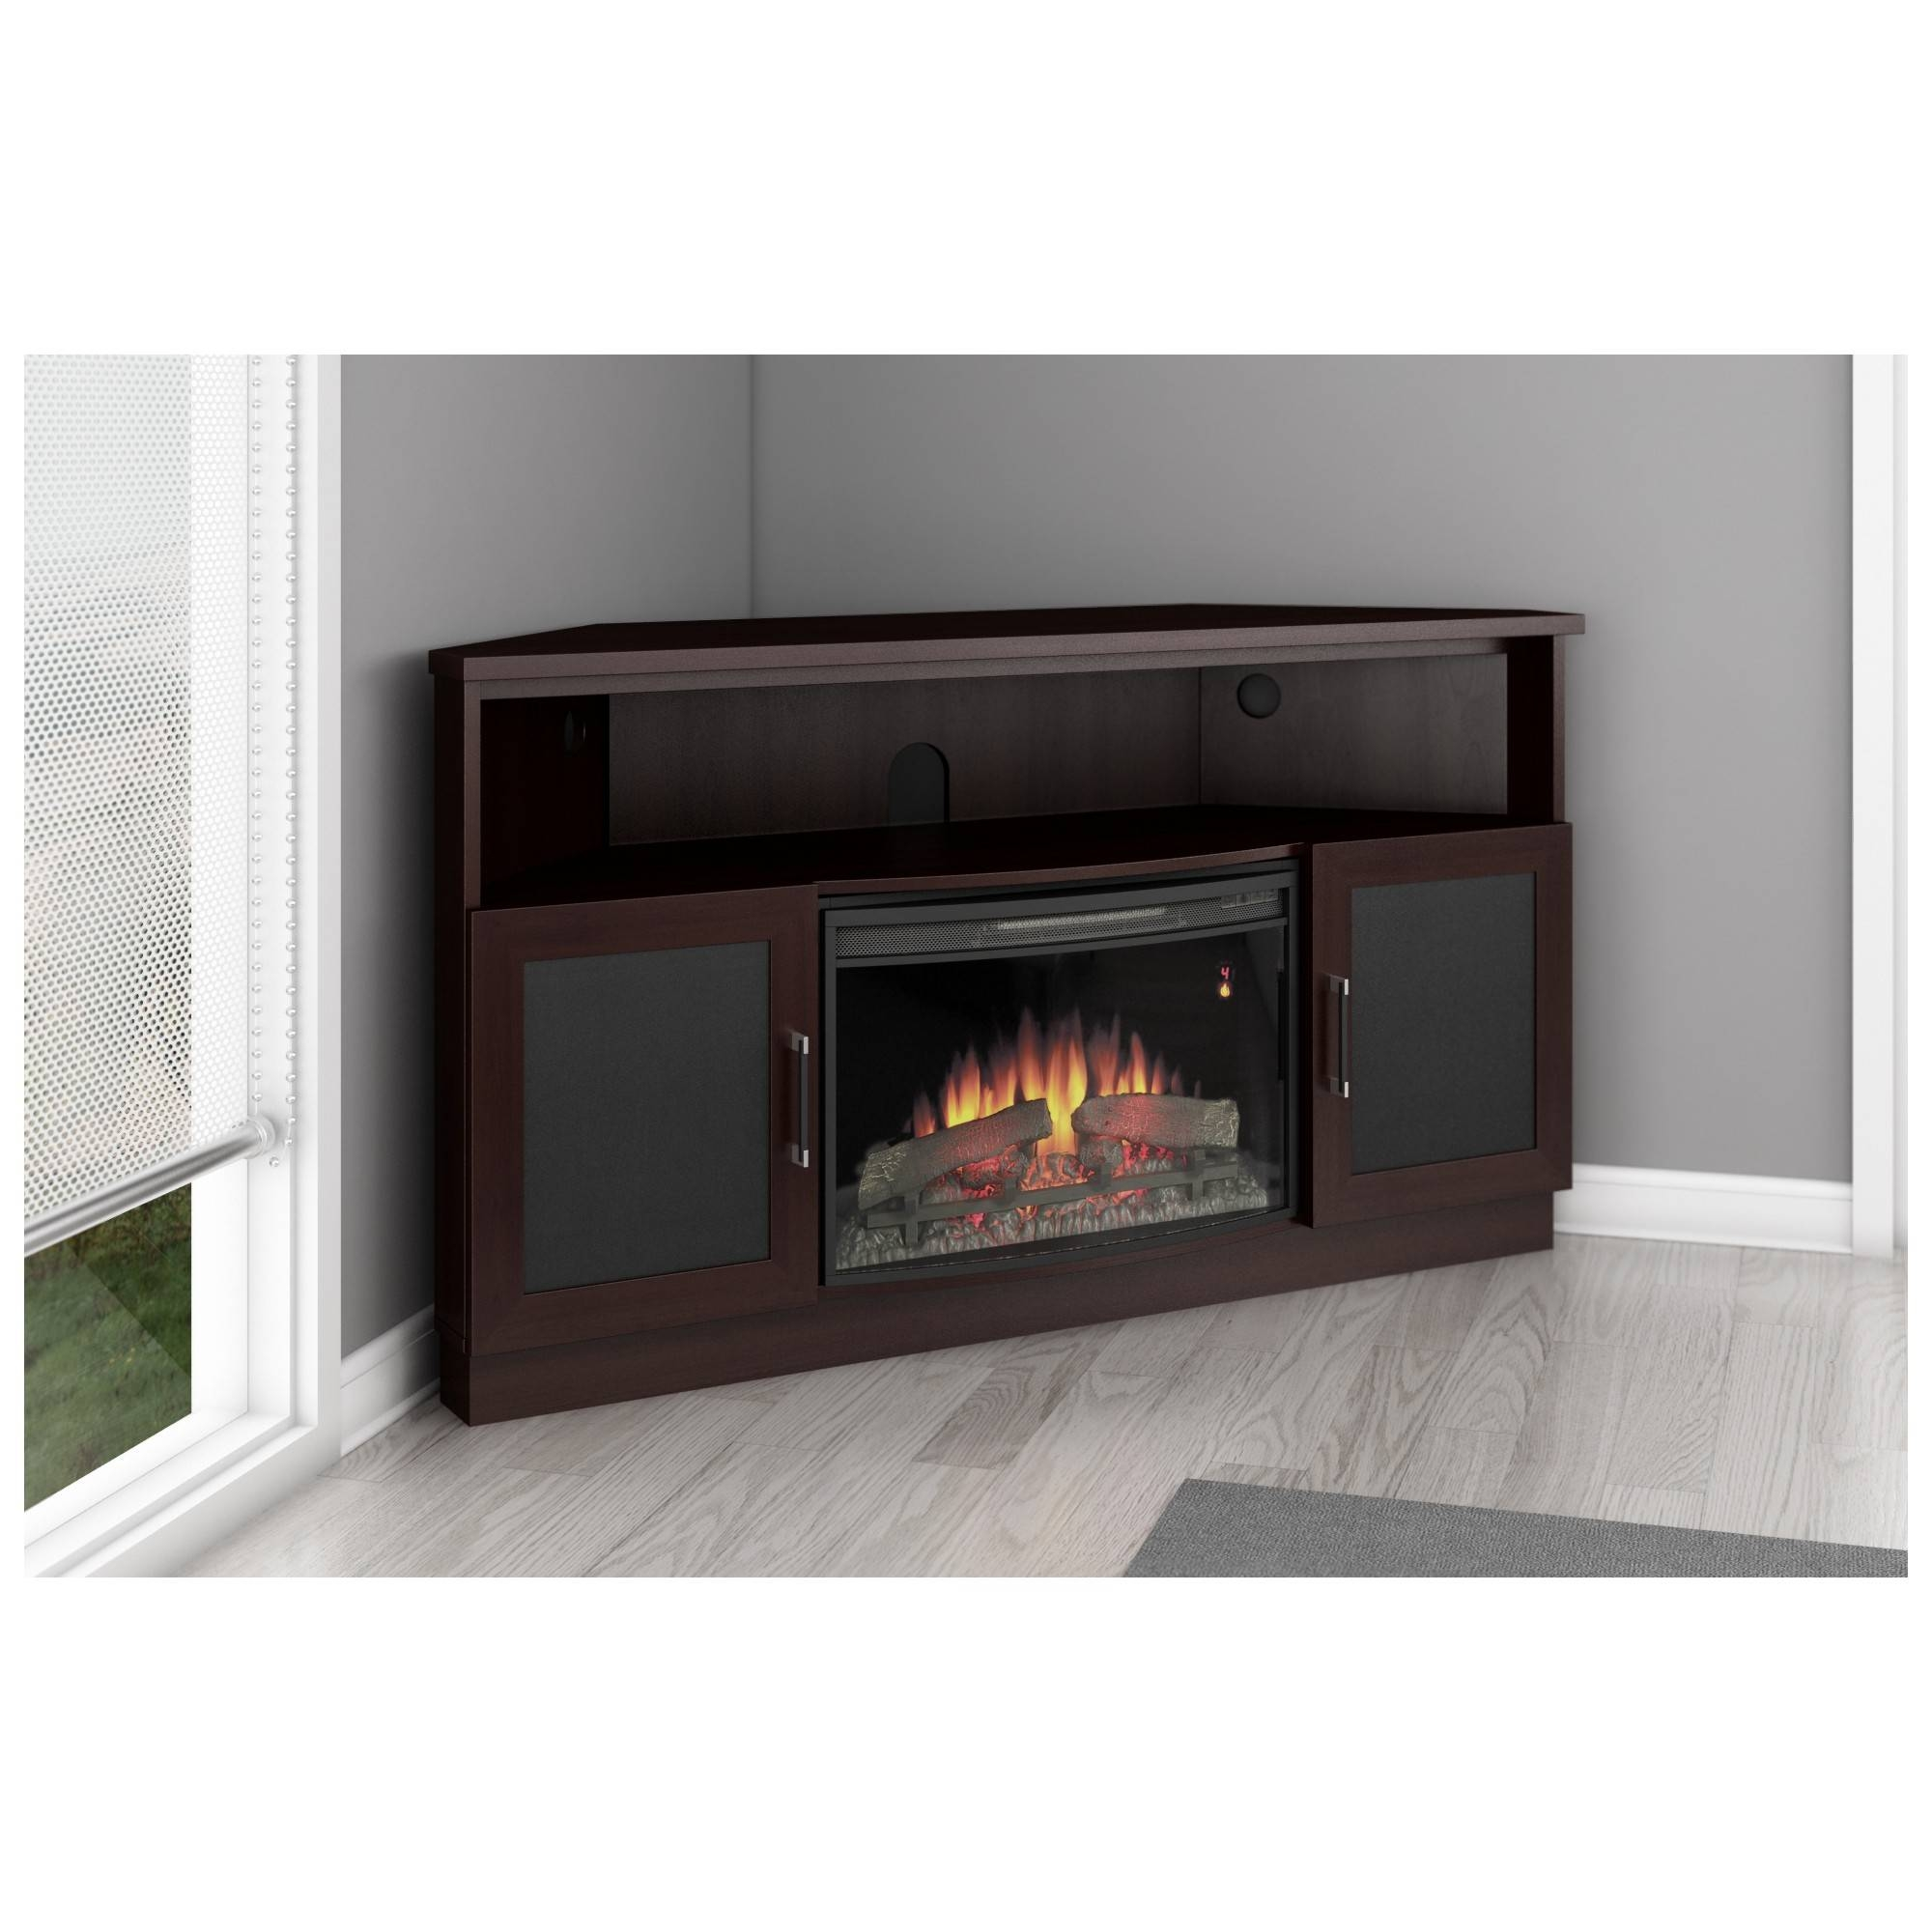 "Furnitech Ft60Cccfb 60"" Tv Stand Contemporary Corner Cabinet W throughout Wenge Tv Cabinets (Image 3 of 15)"